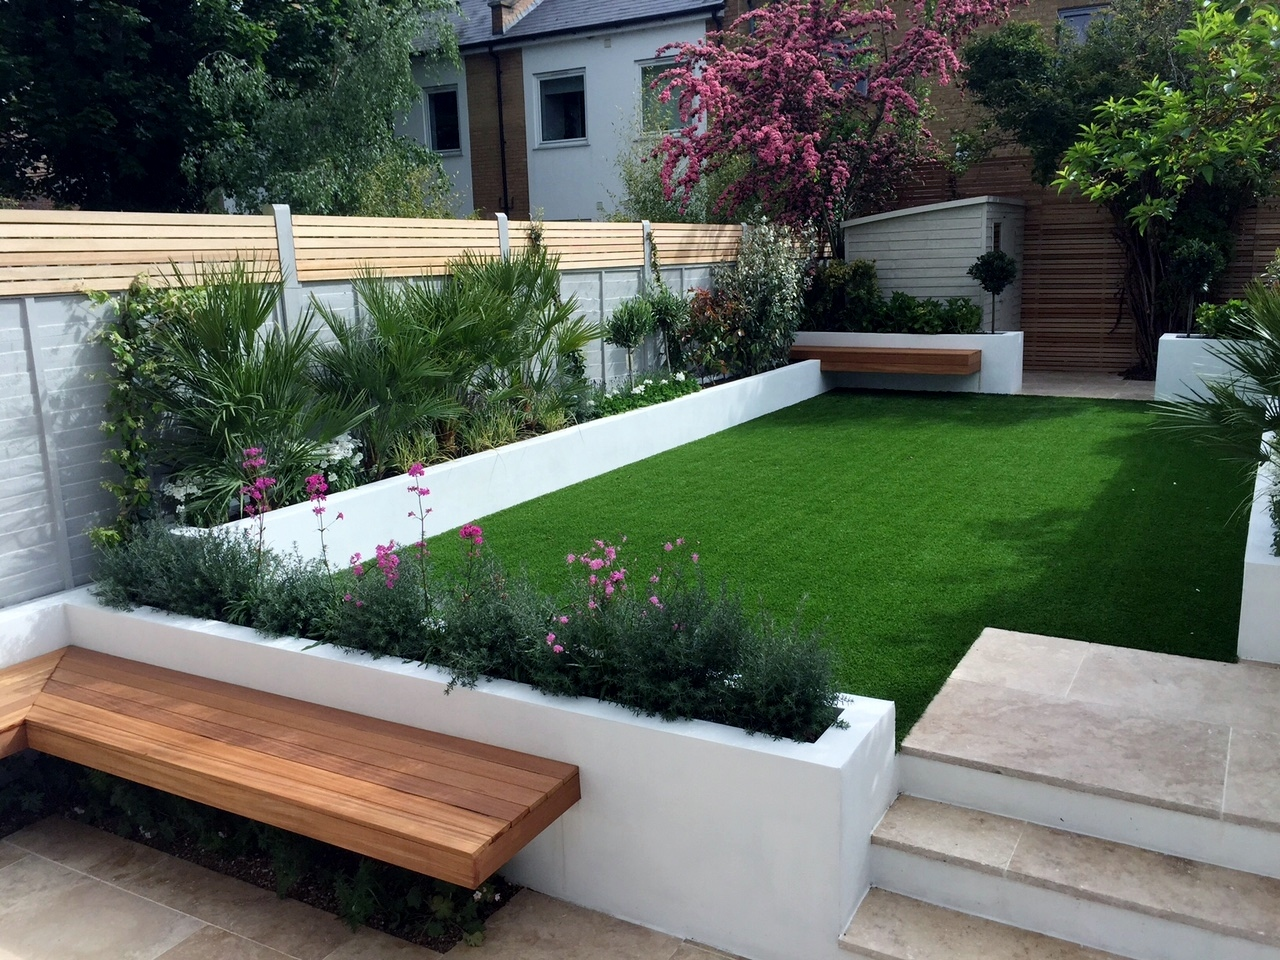 Modern garden design ideas fulham chelsea battersea for Modern back garden designs